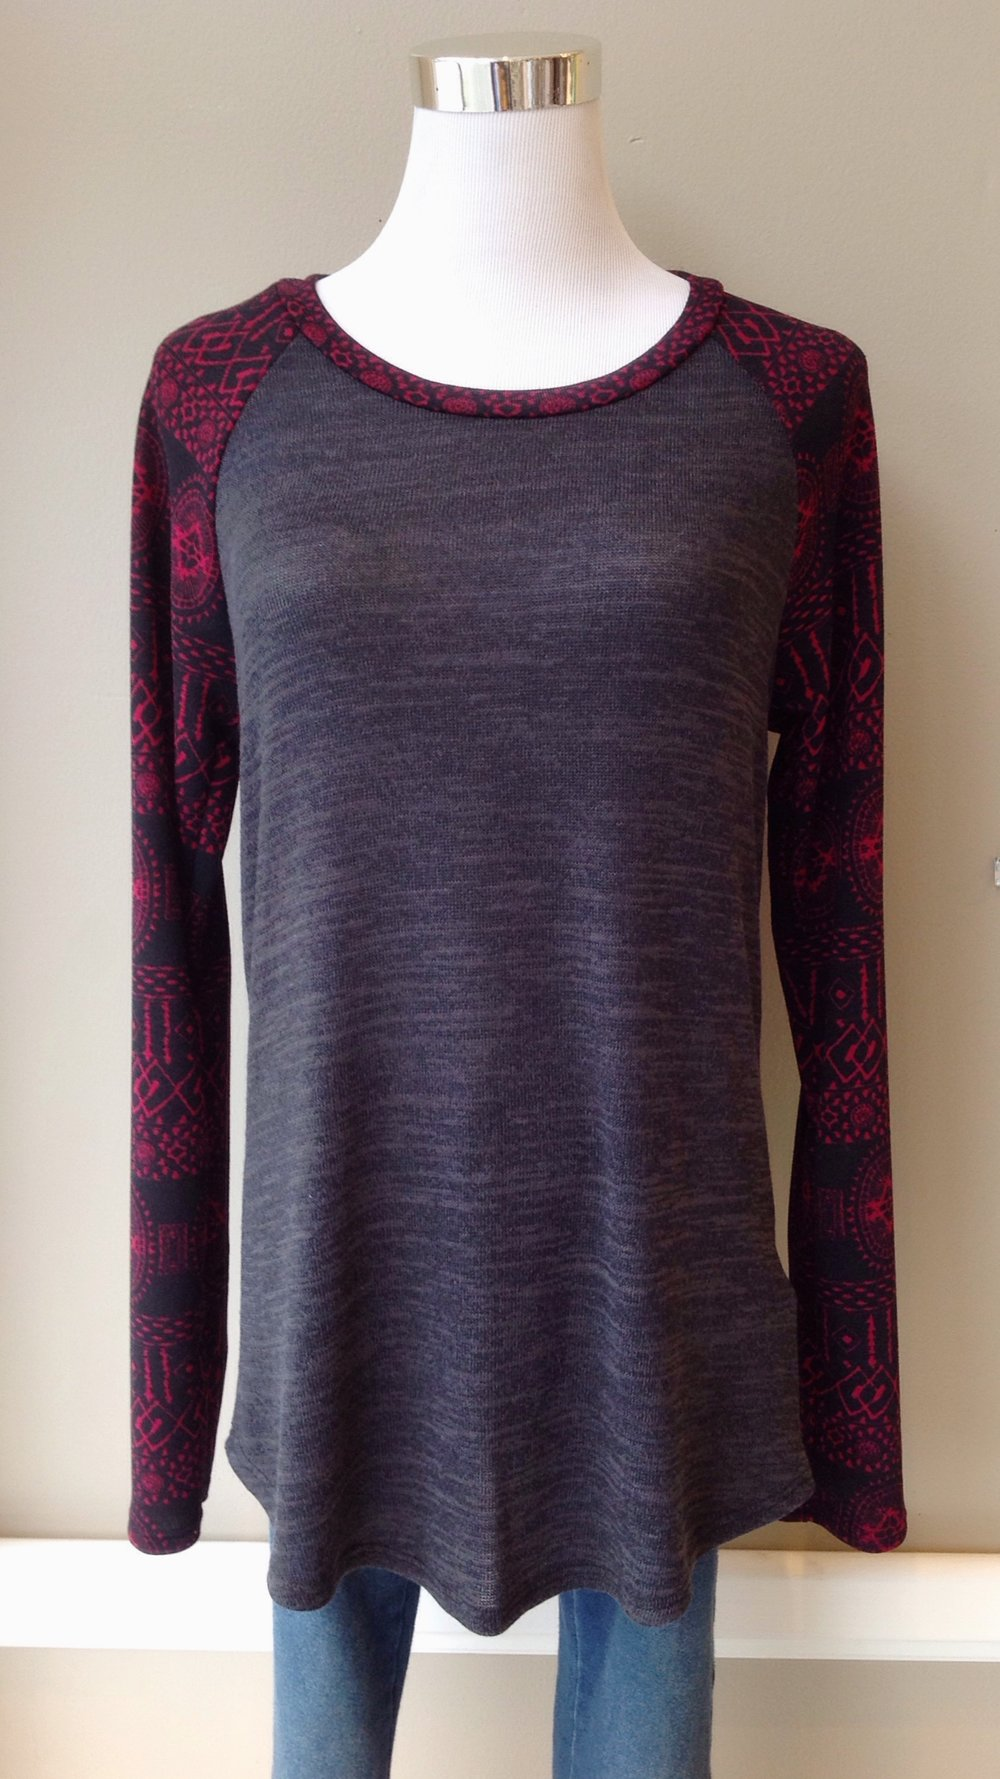 Sweater knit baseball top in charcoal/wine/black, $34